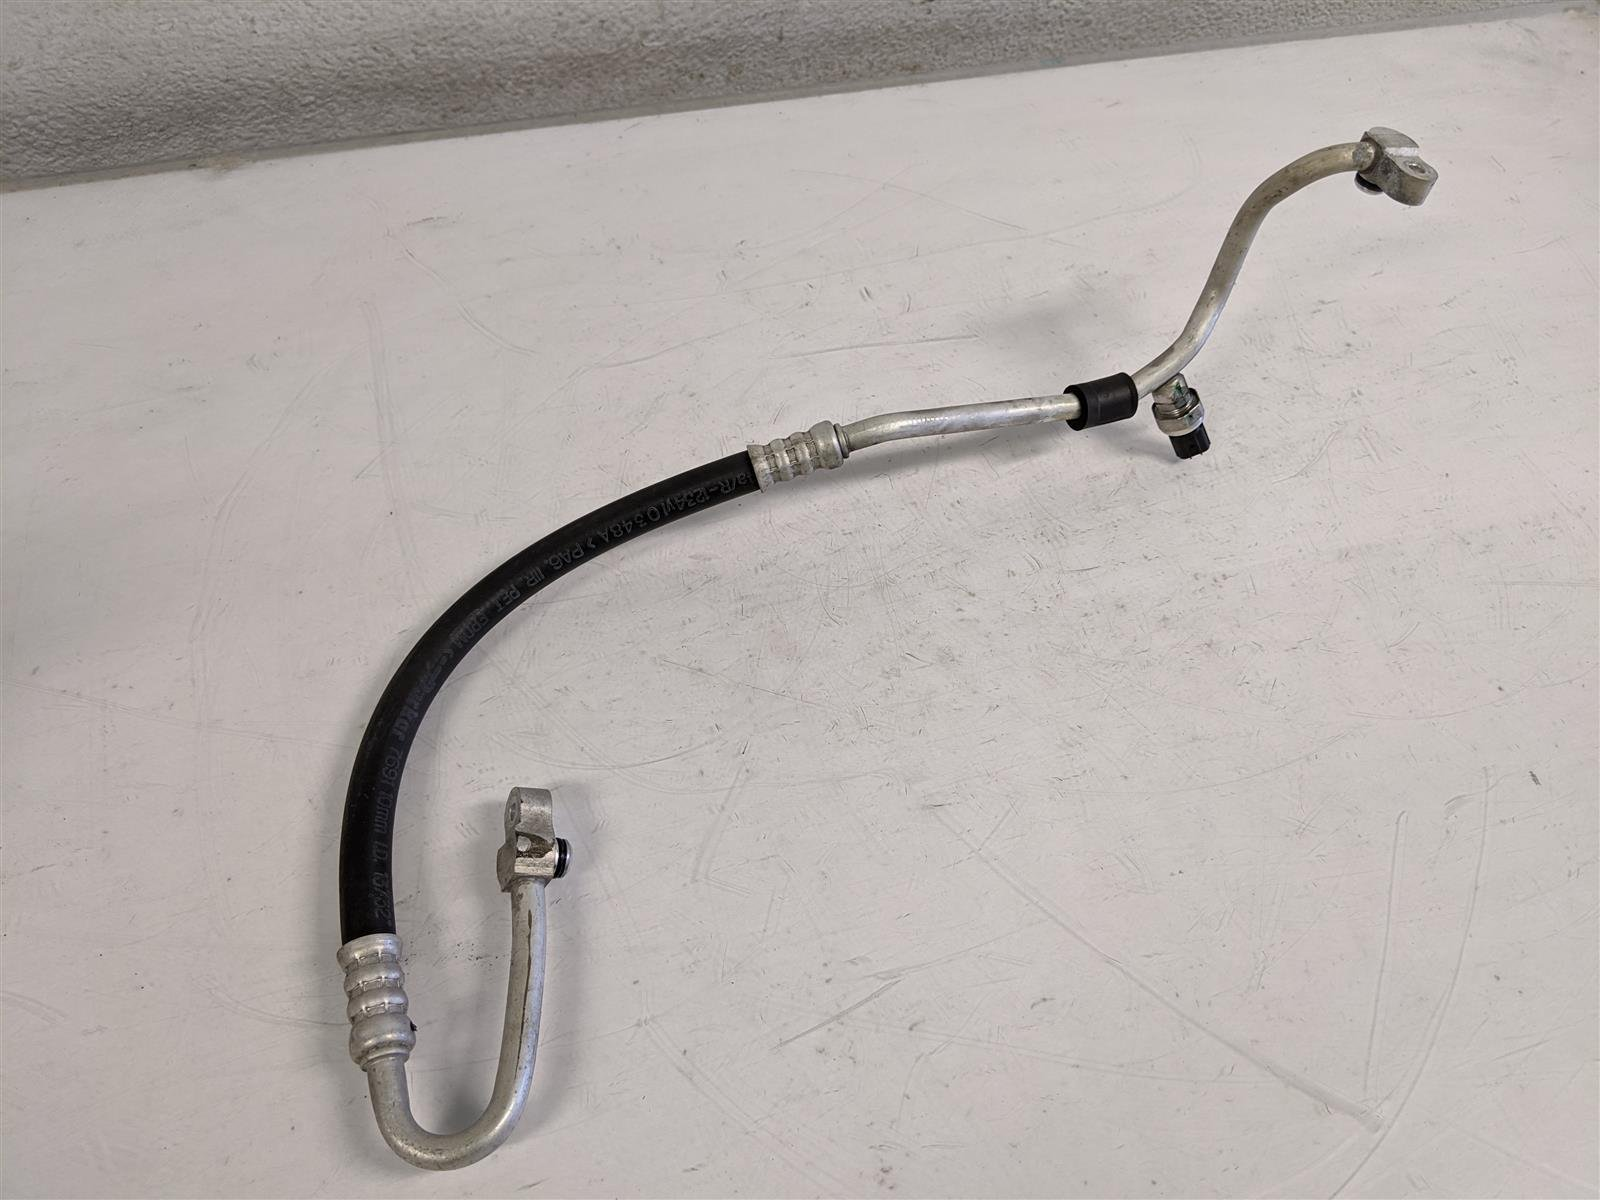 2018 Honda Odyssey Ac Discharge Hose Replacement